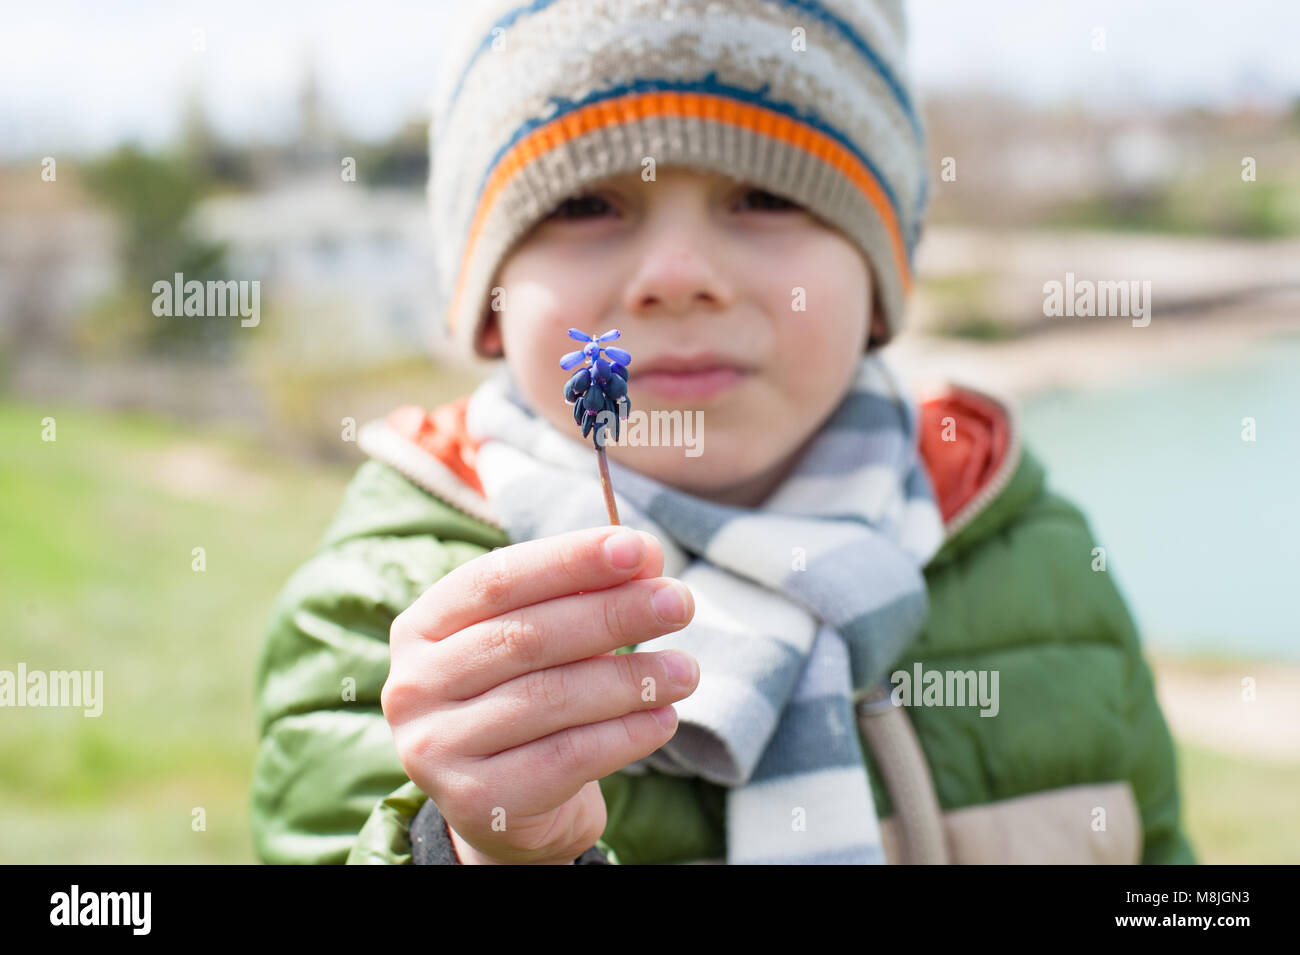 beautiful little boy in jacket, scarf and hat shows Muscari flower which he holds in his hand in spring - Stock Image